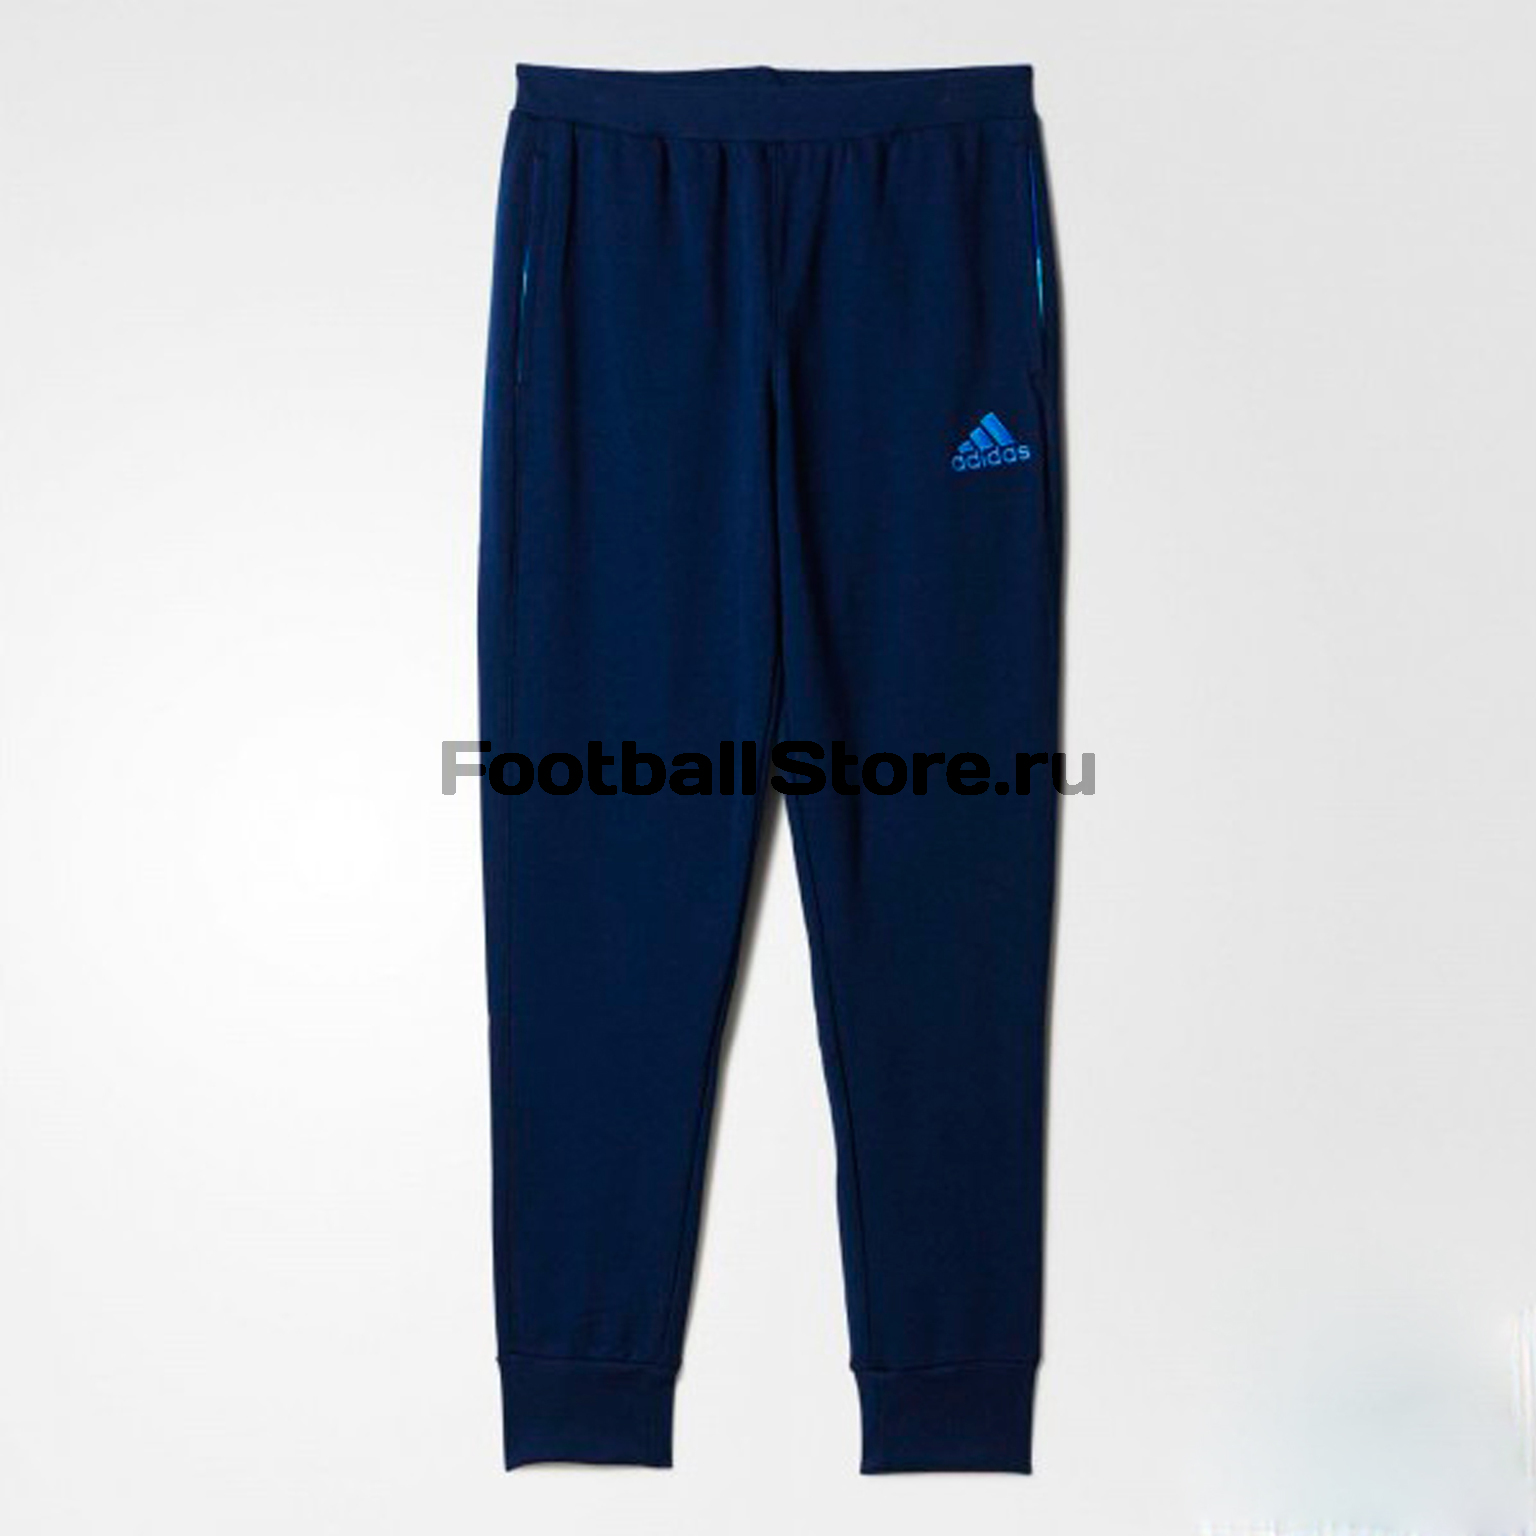 Брюки Adidas CON16 SWT PNT AB3156